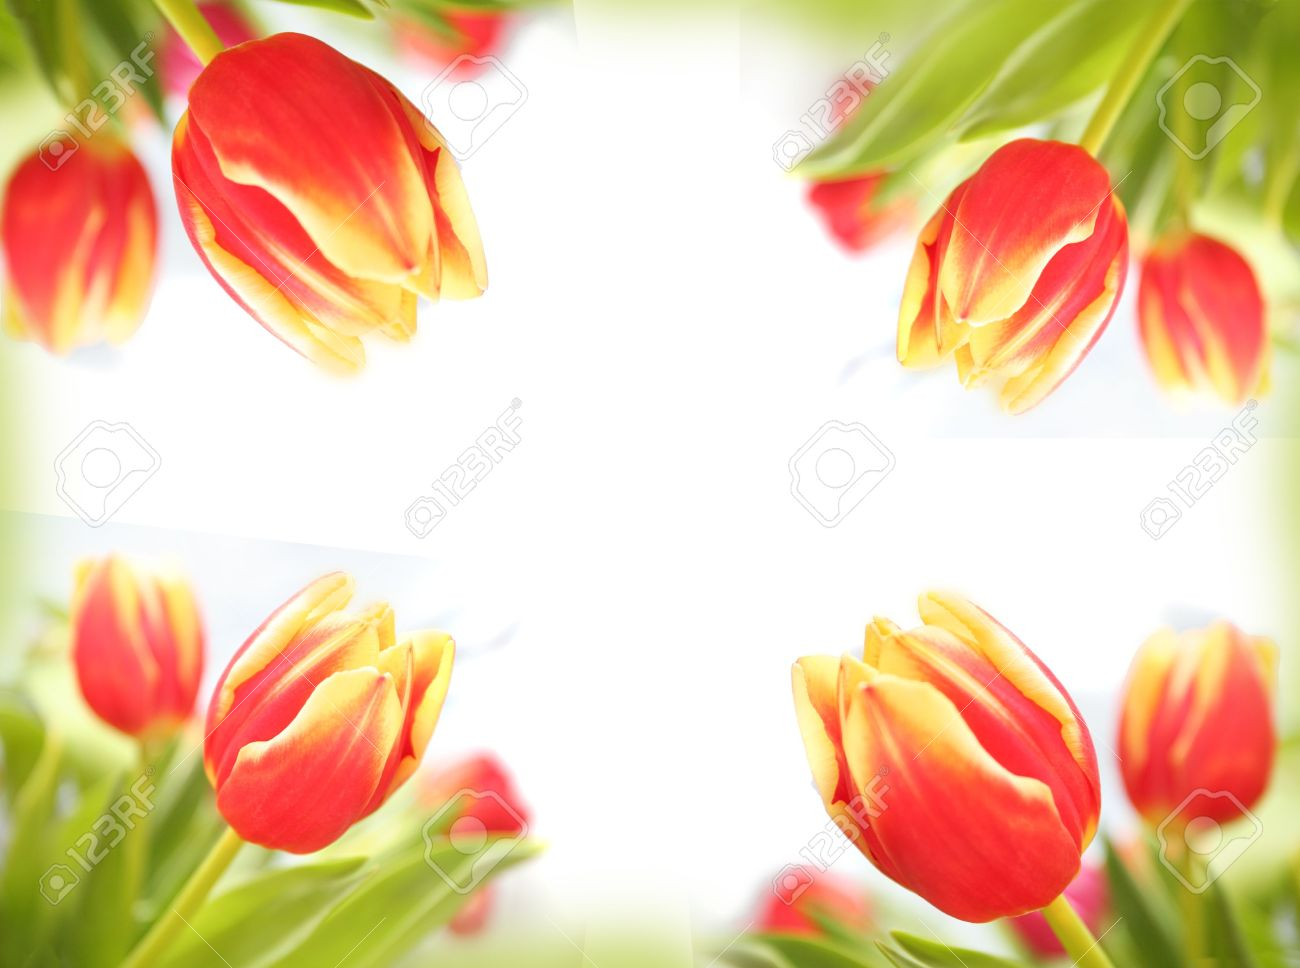 Spring tulips beautiful colorful flowers making border framed isolated love letter horizontal background Stock Photo - 902729